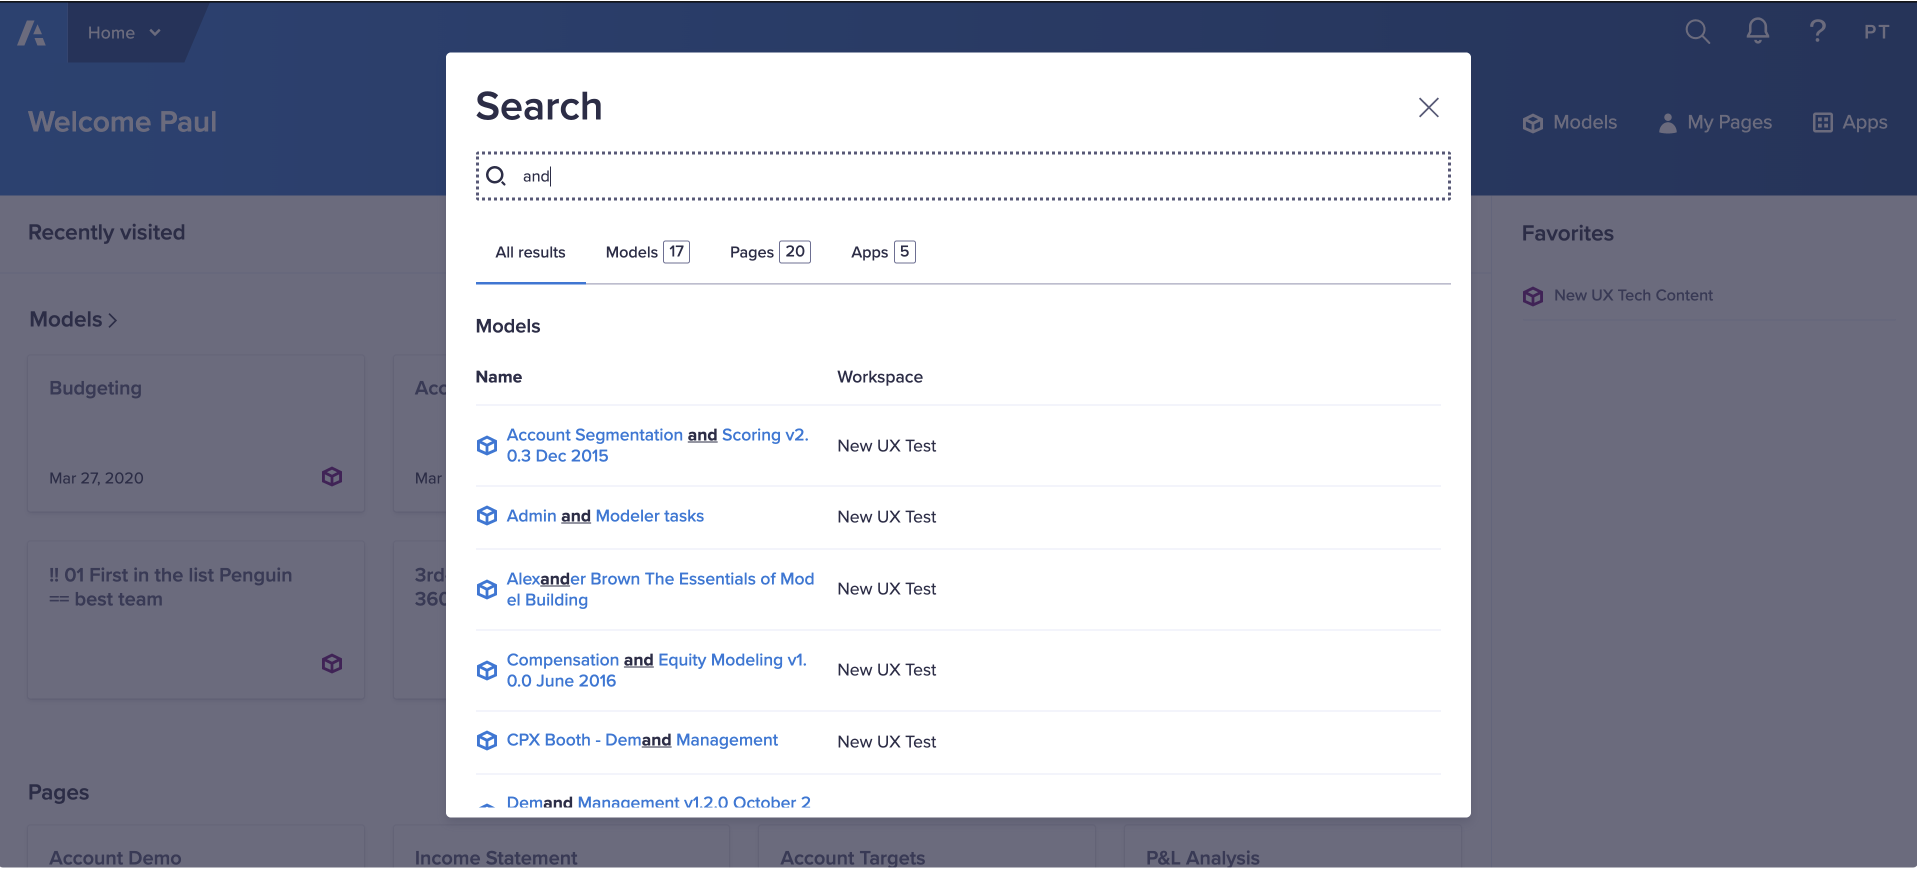 Search view with options to filter by model, apps or pages